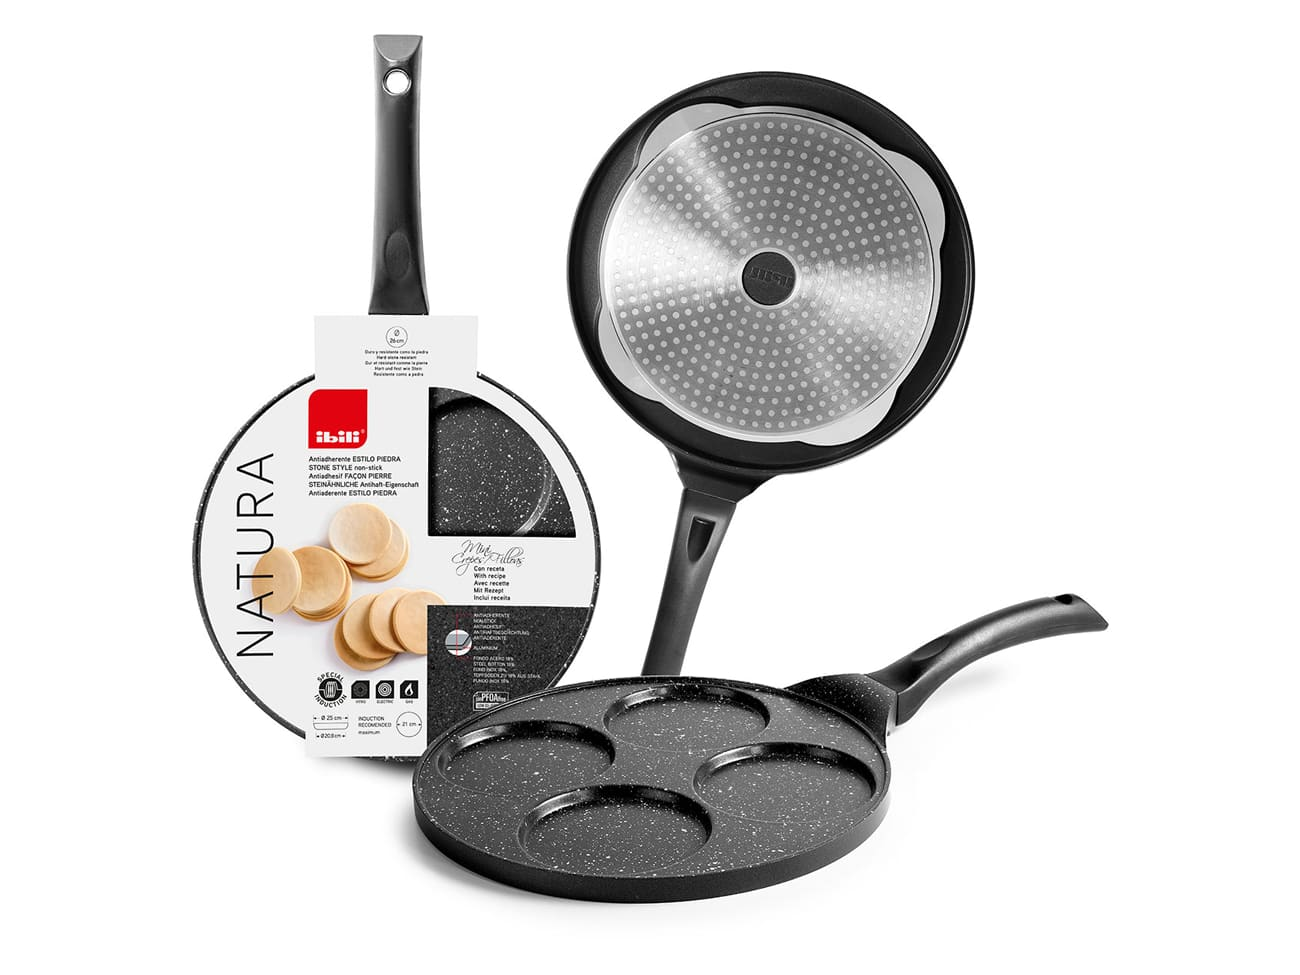 poele a blinis et pancake speciale induction ibili